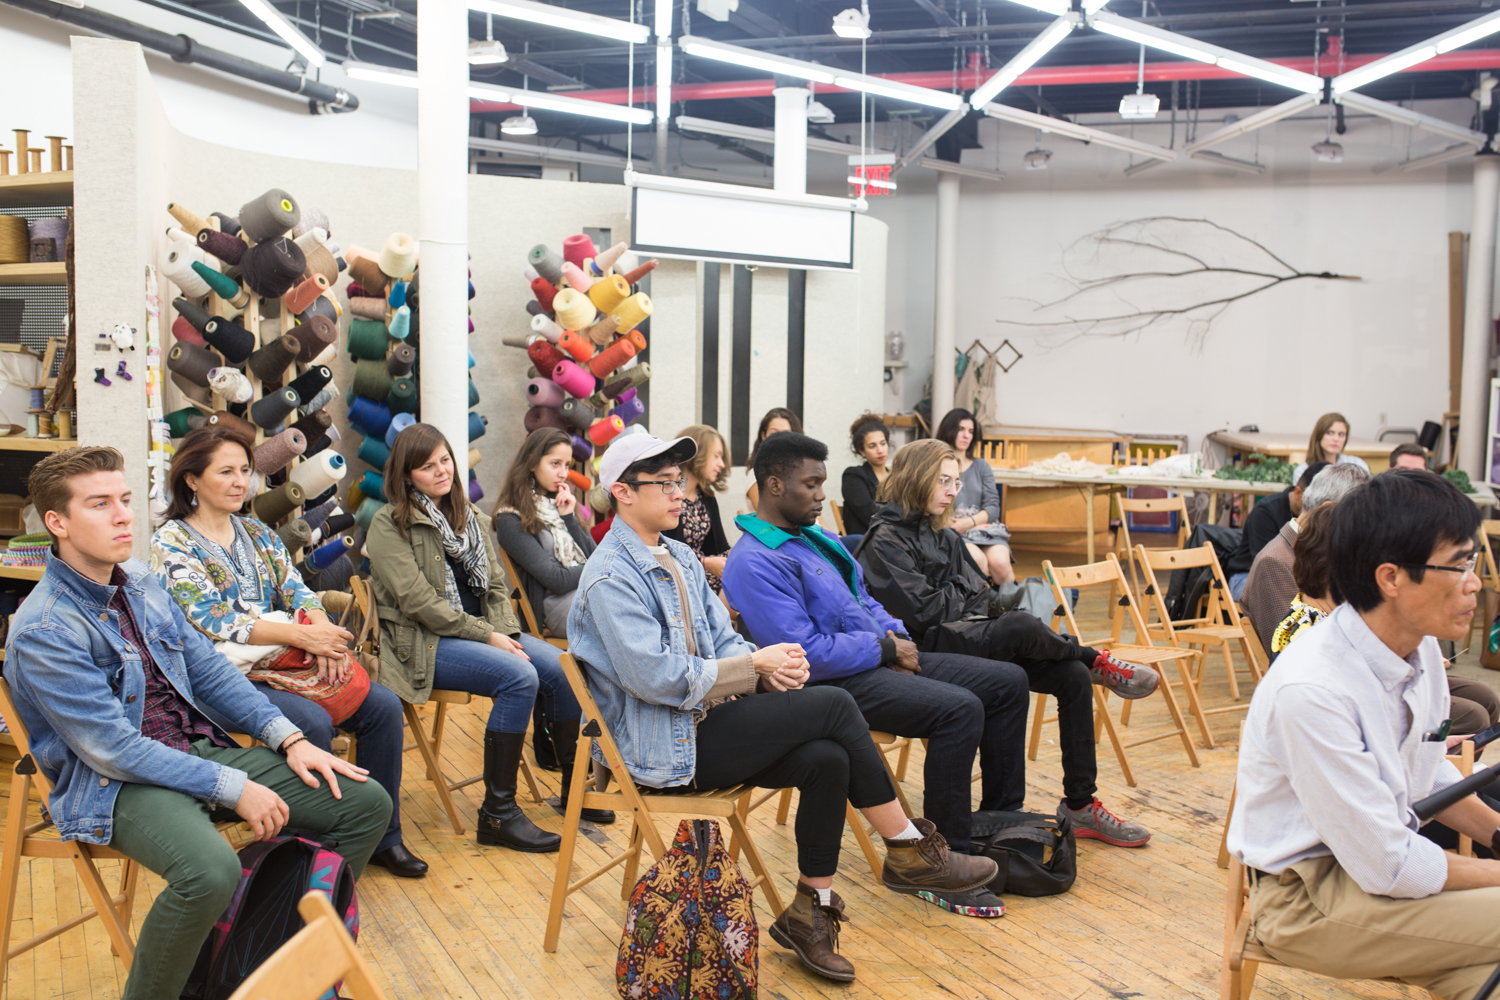 The room is filled with audience members as they watch the performance intently.